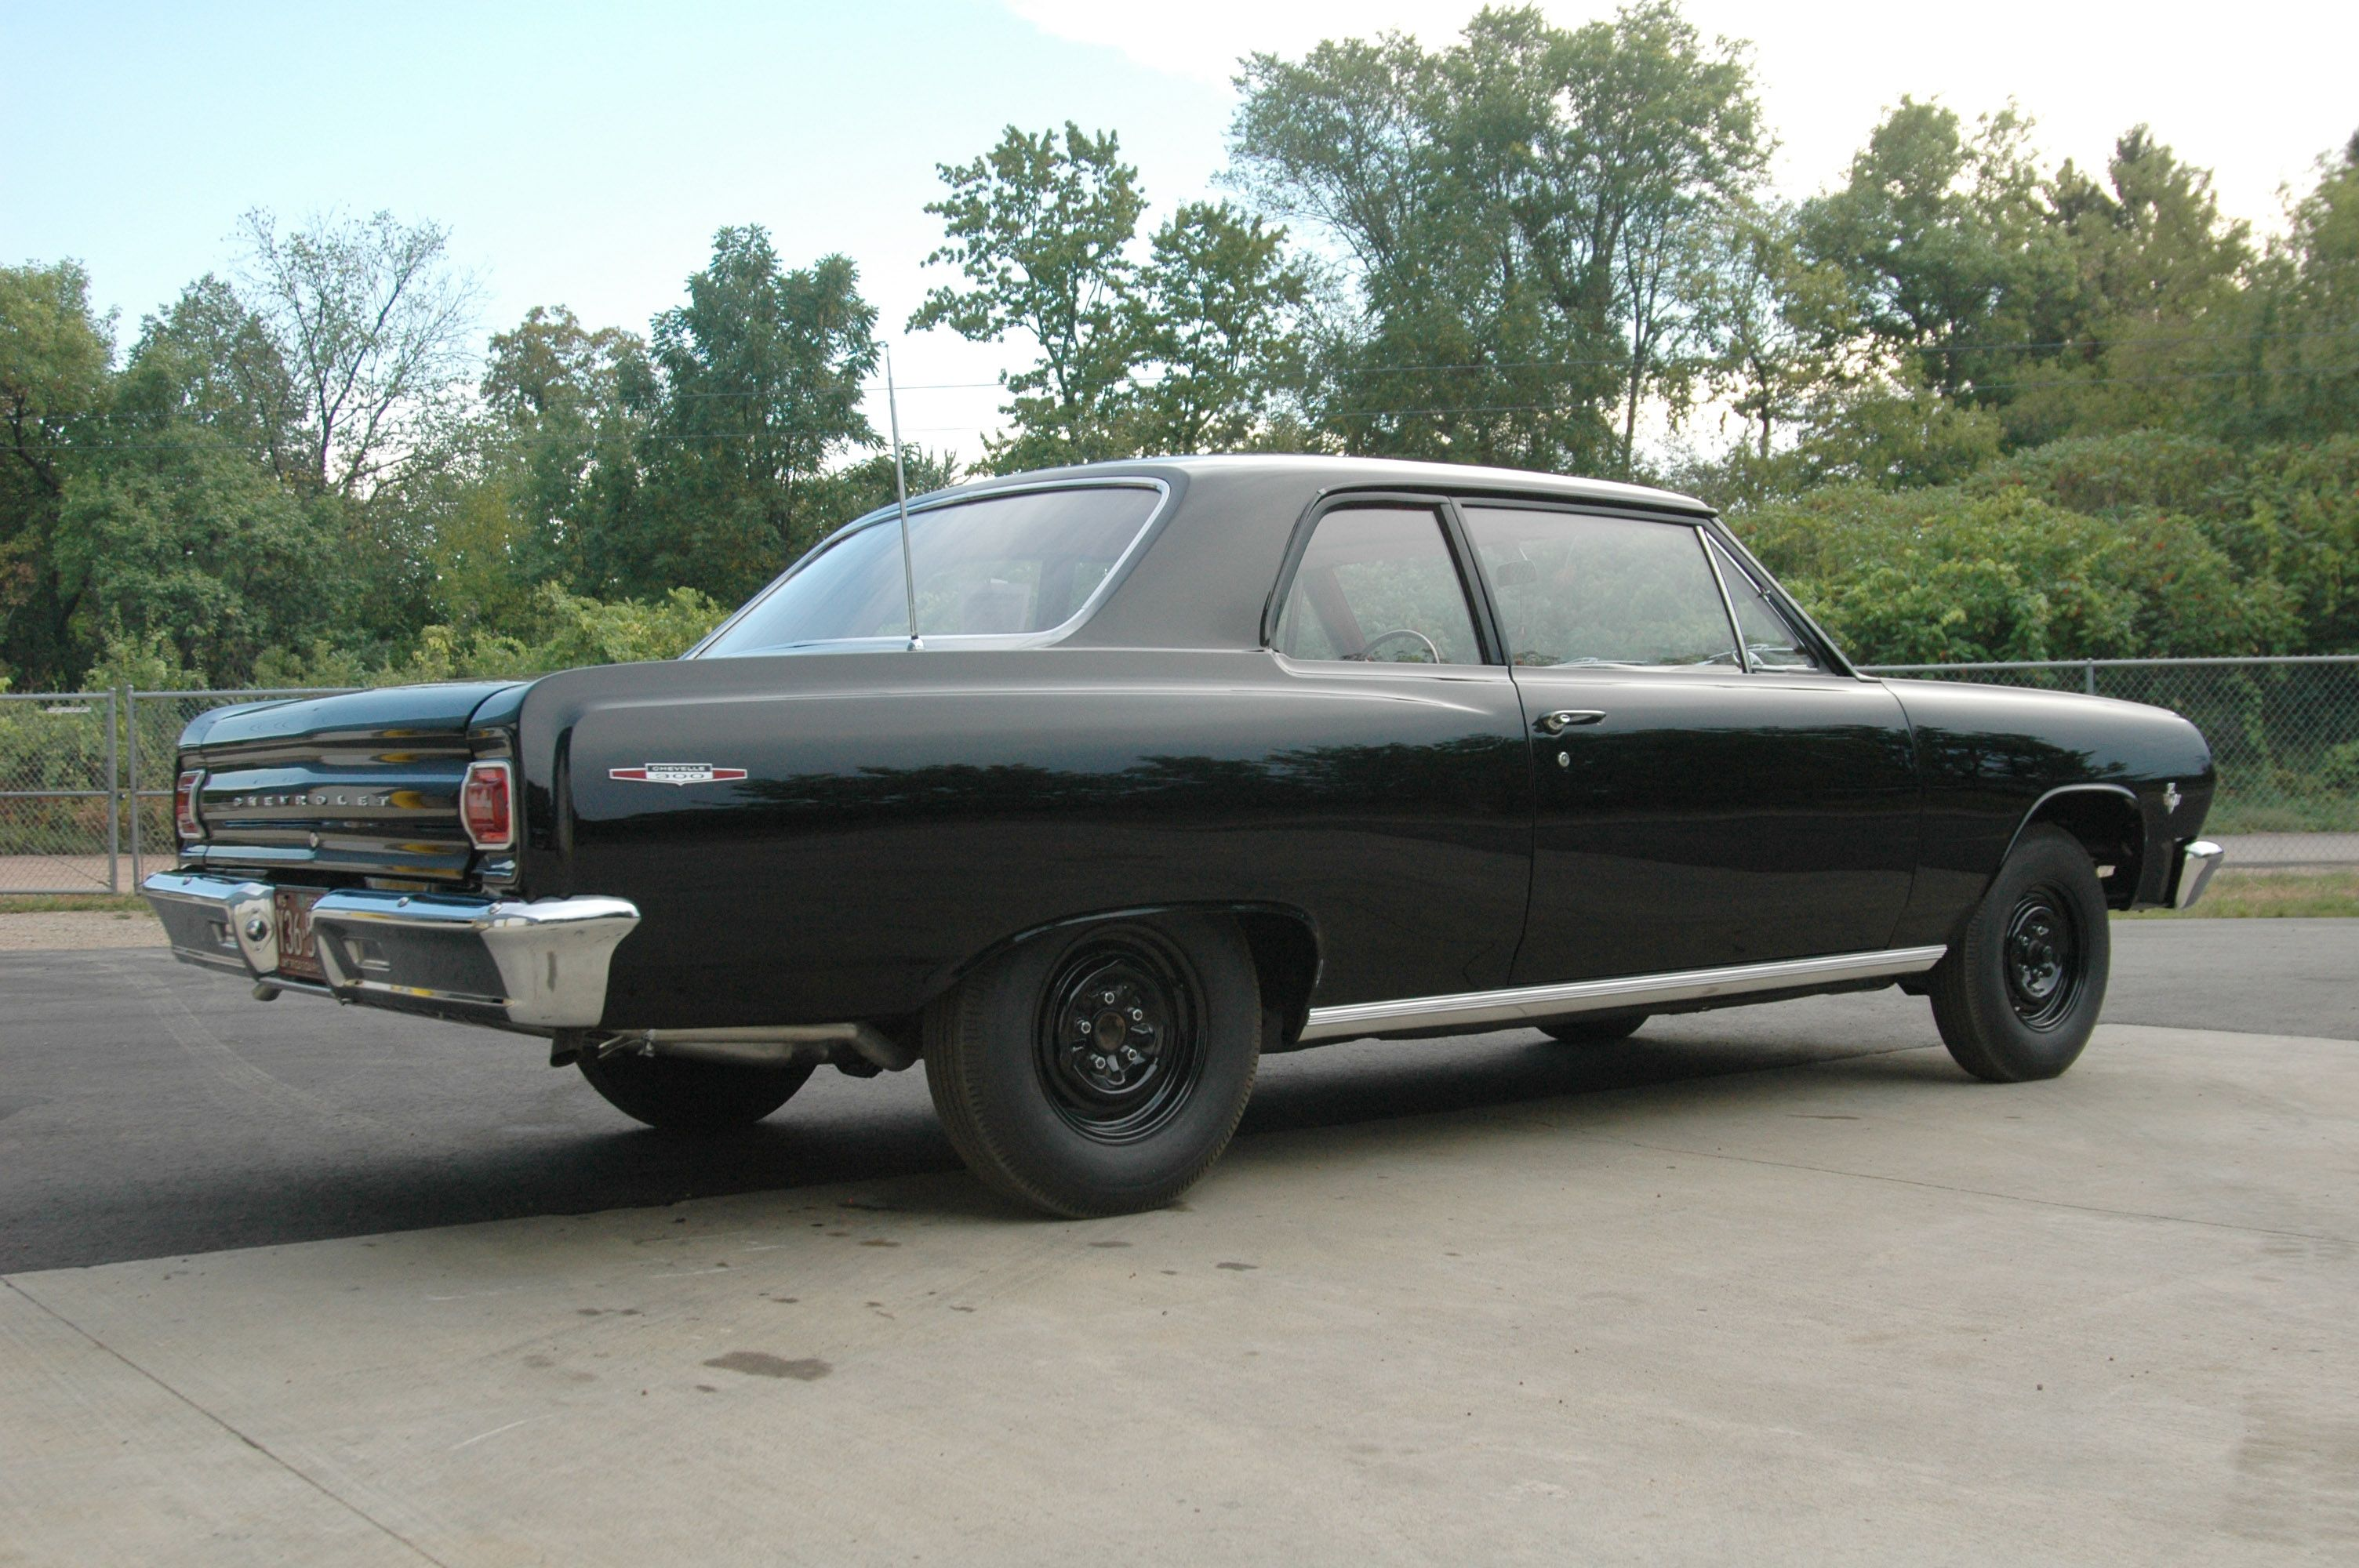 1965 Chevelle 5 - Old Cars Weekly | Cars | Pinterest | Cars ...